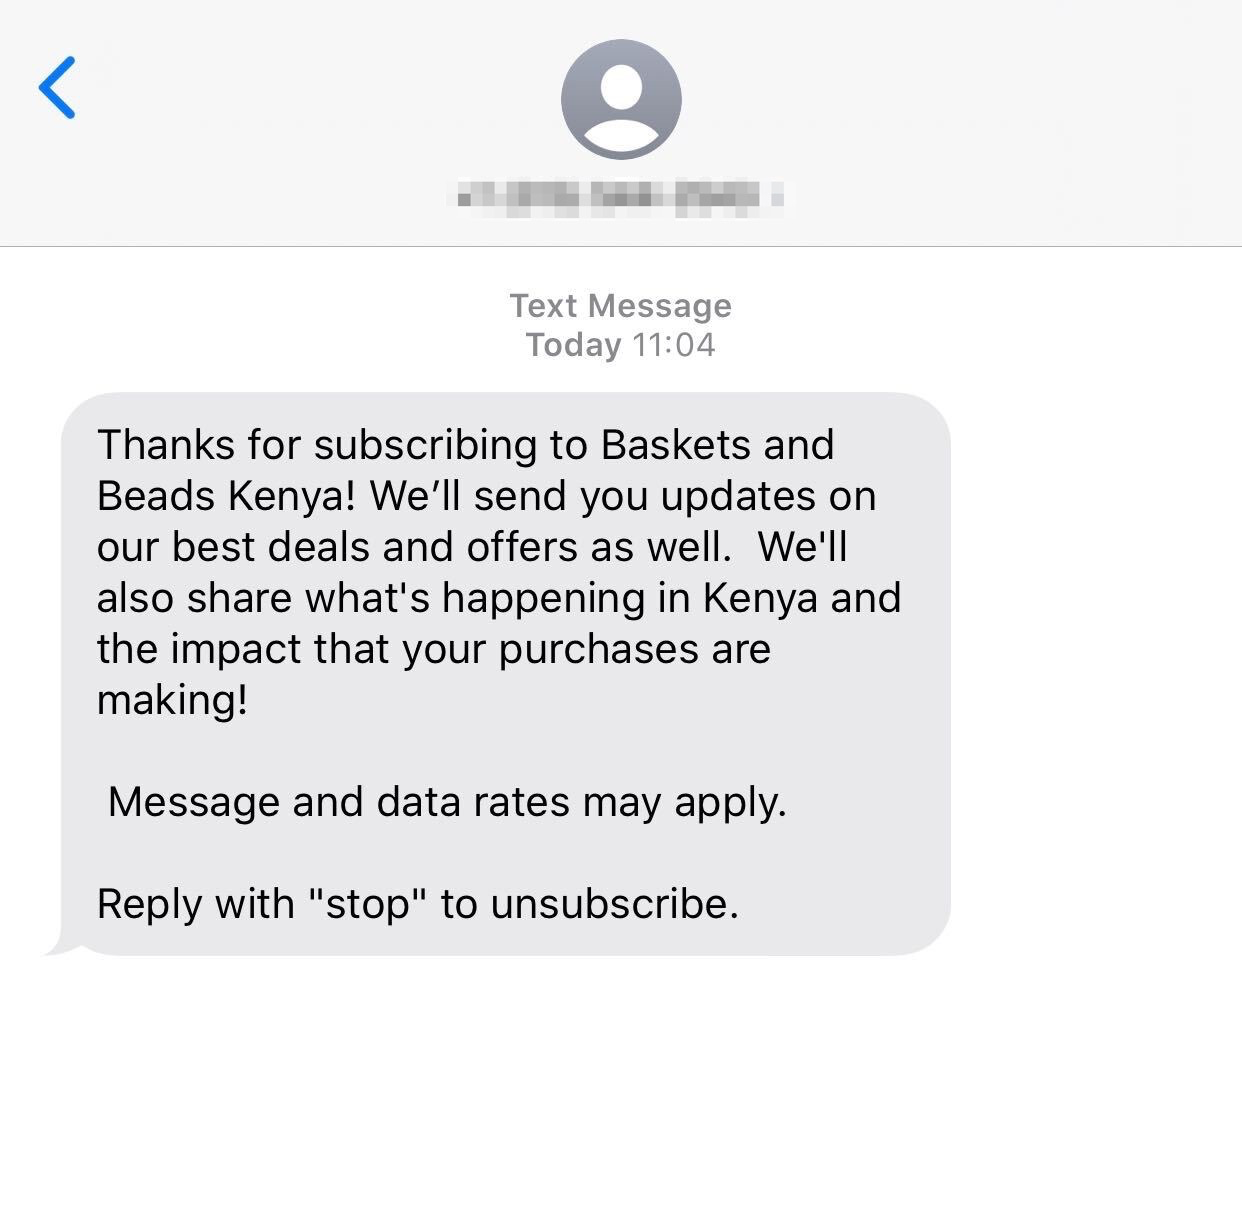 Welcome message from Basket and Beads Kenya